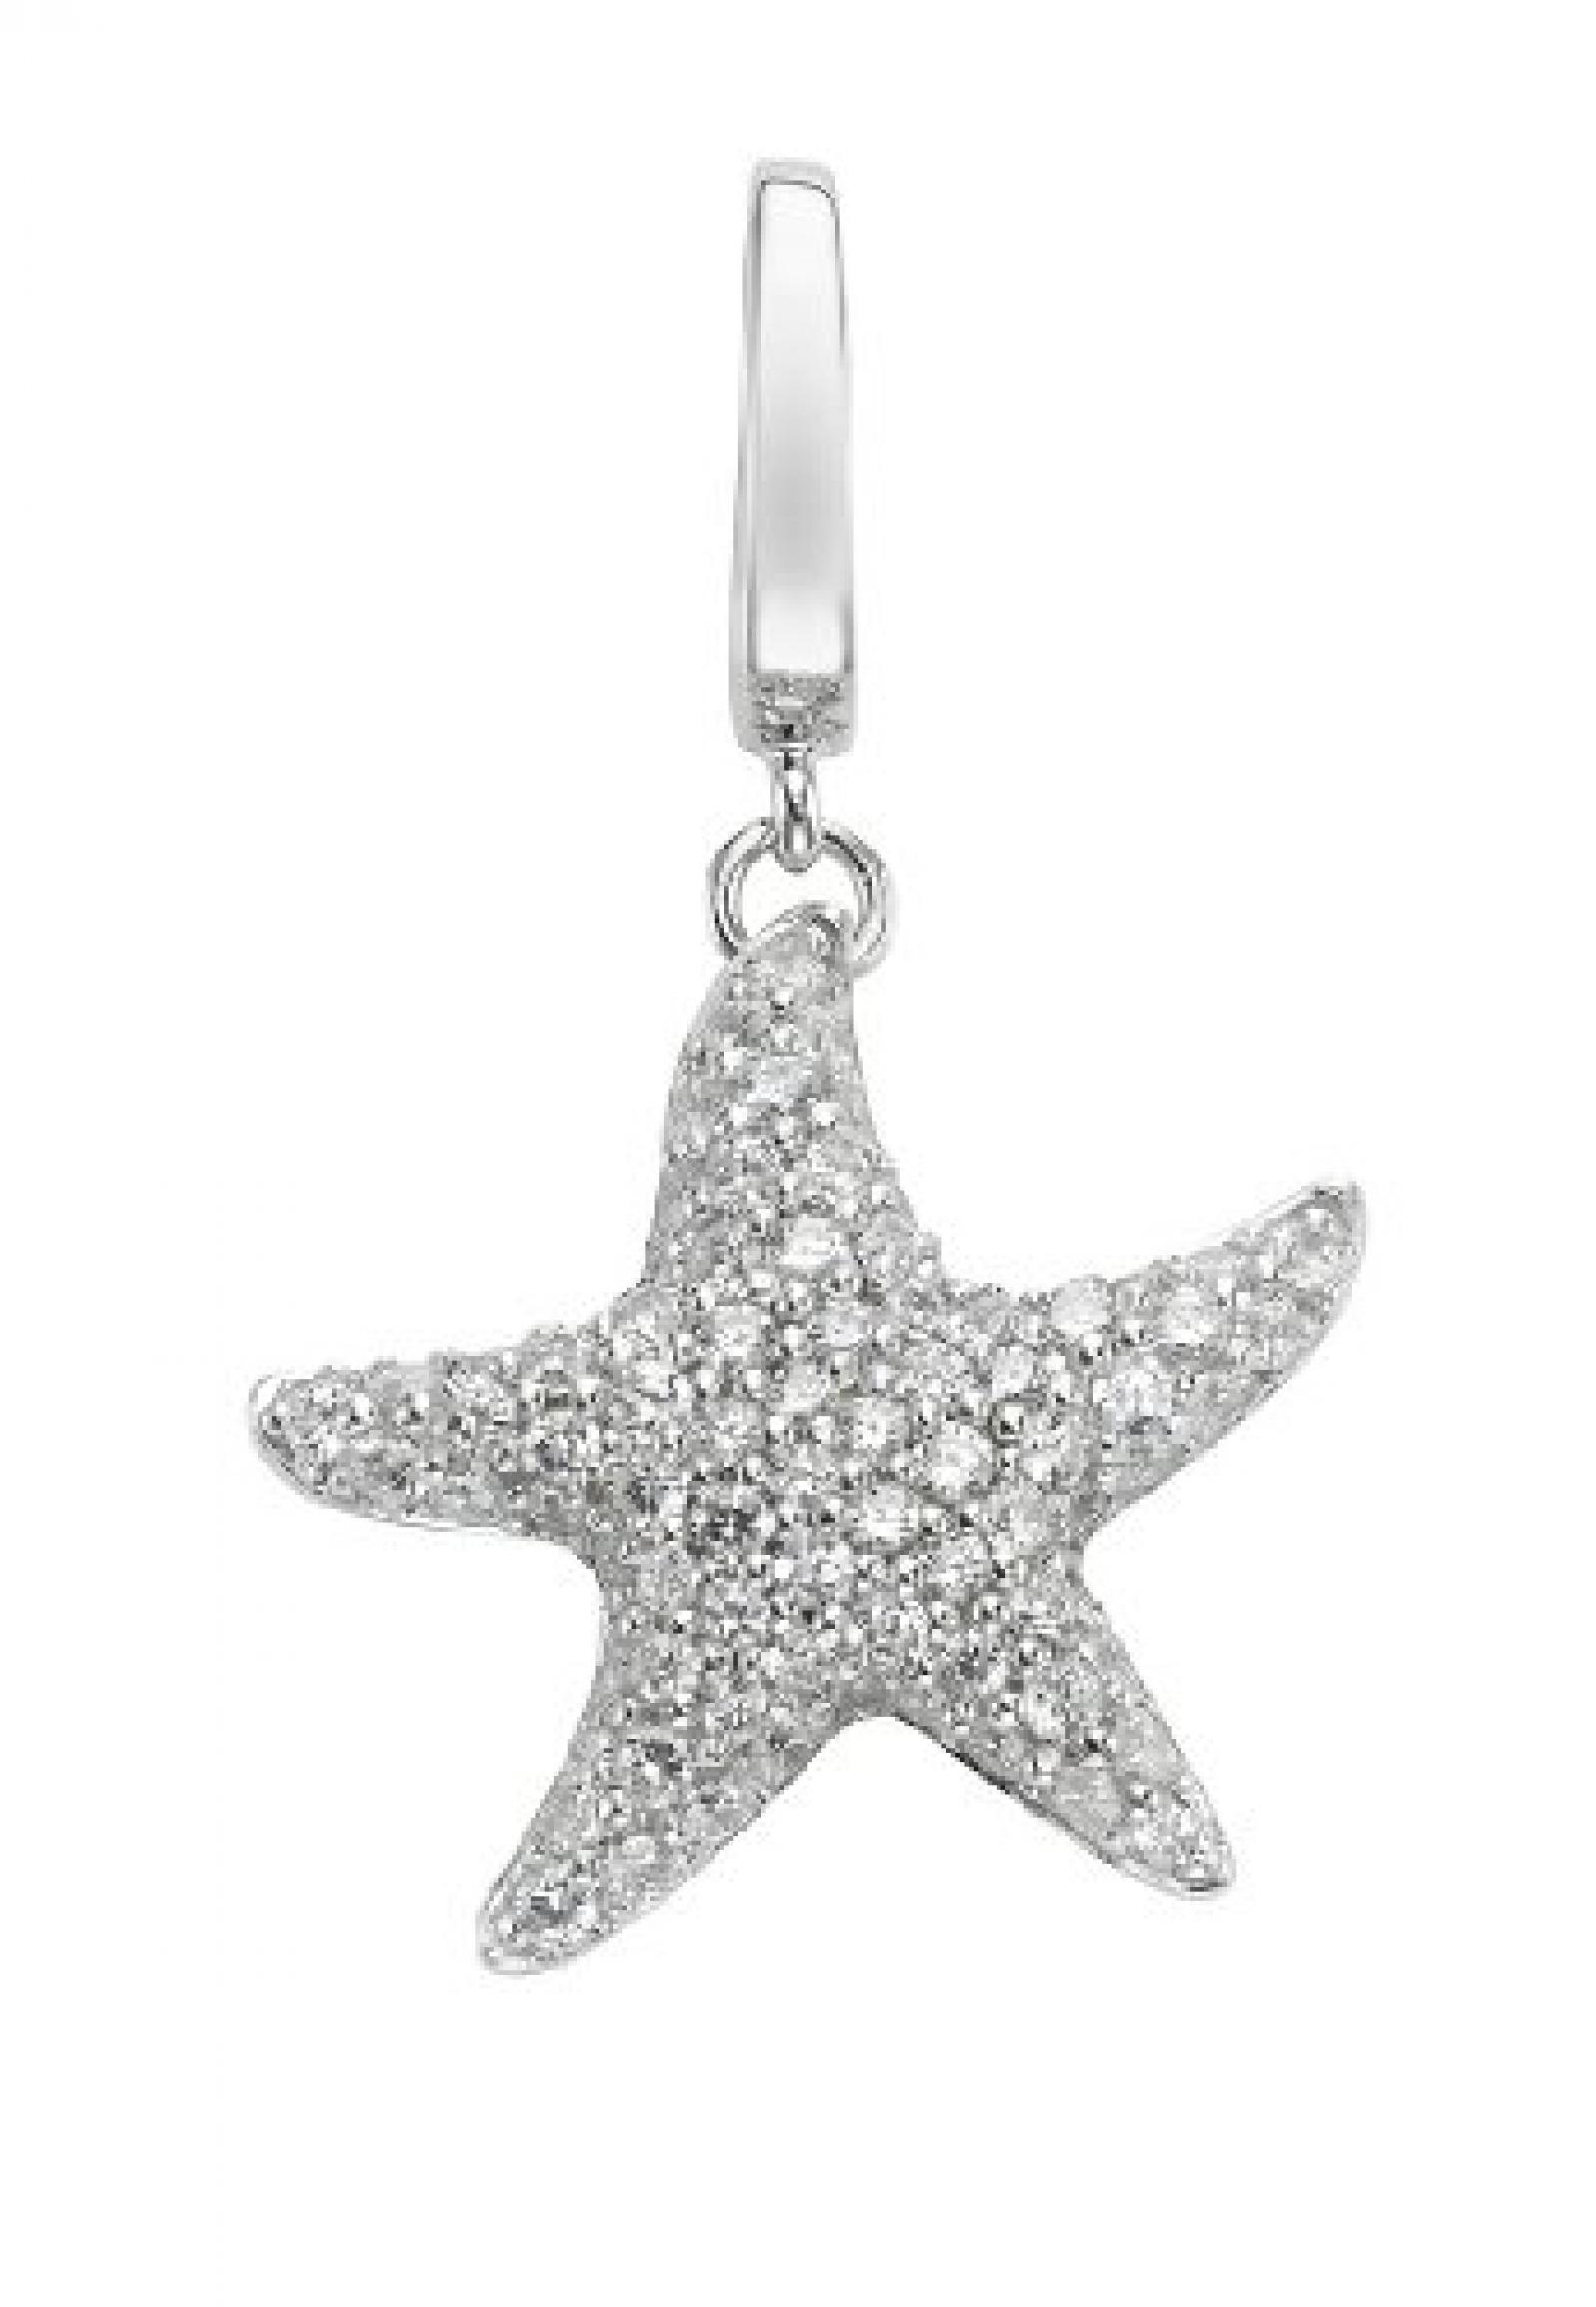 JETTE Charms Damen-Charm CHARM 925er Silber 82 Zirkonia One Size, silber